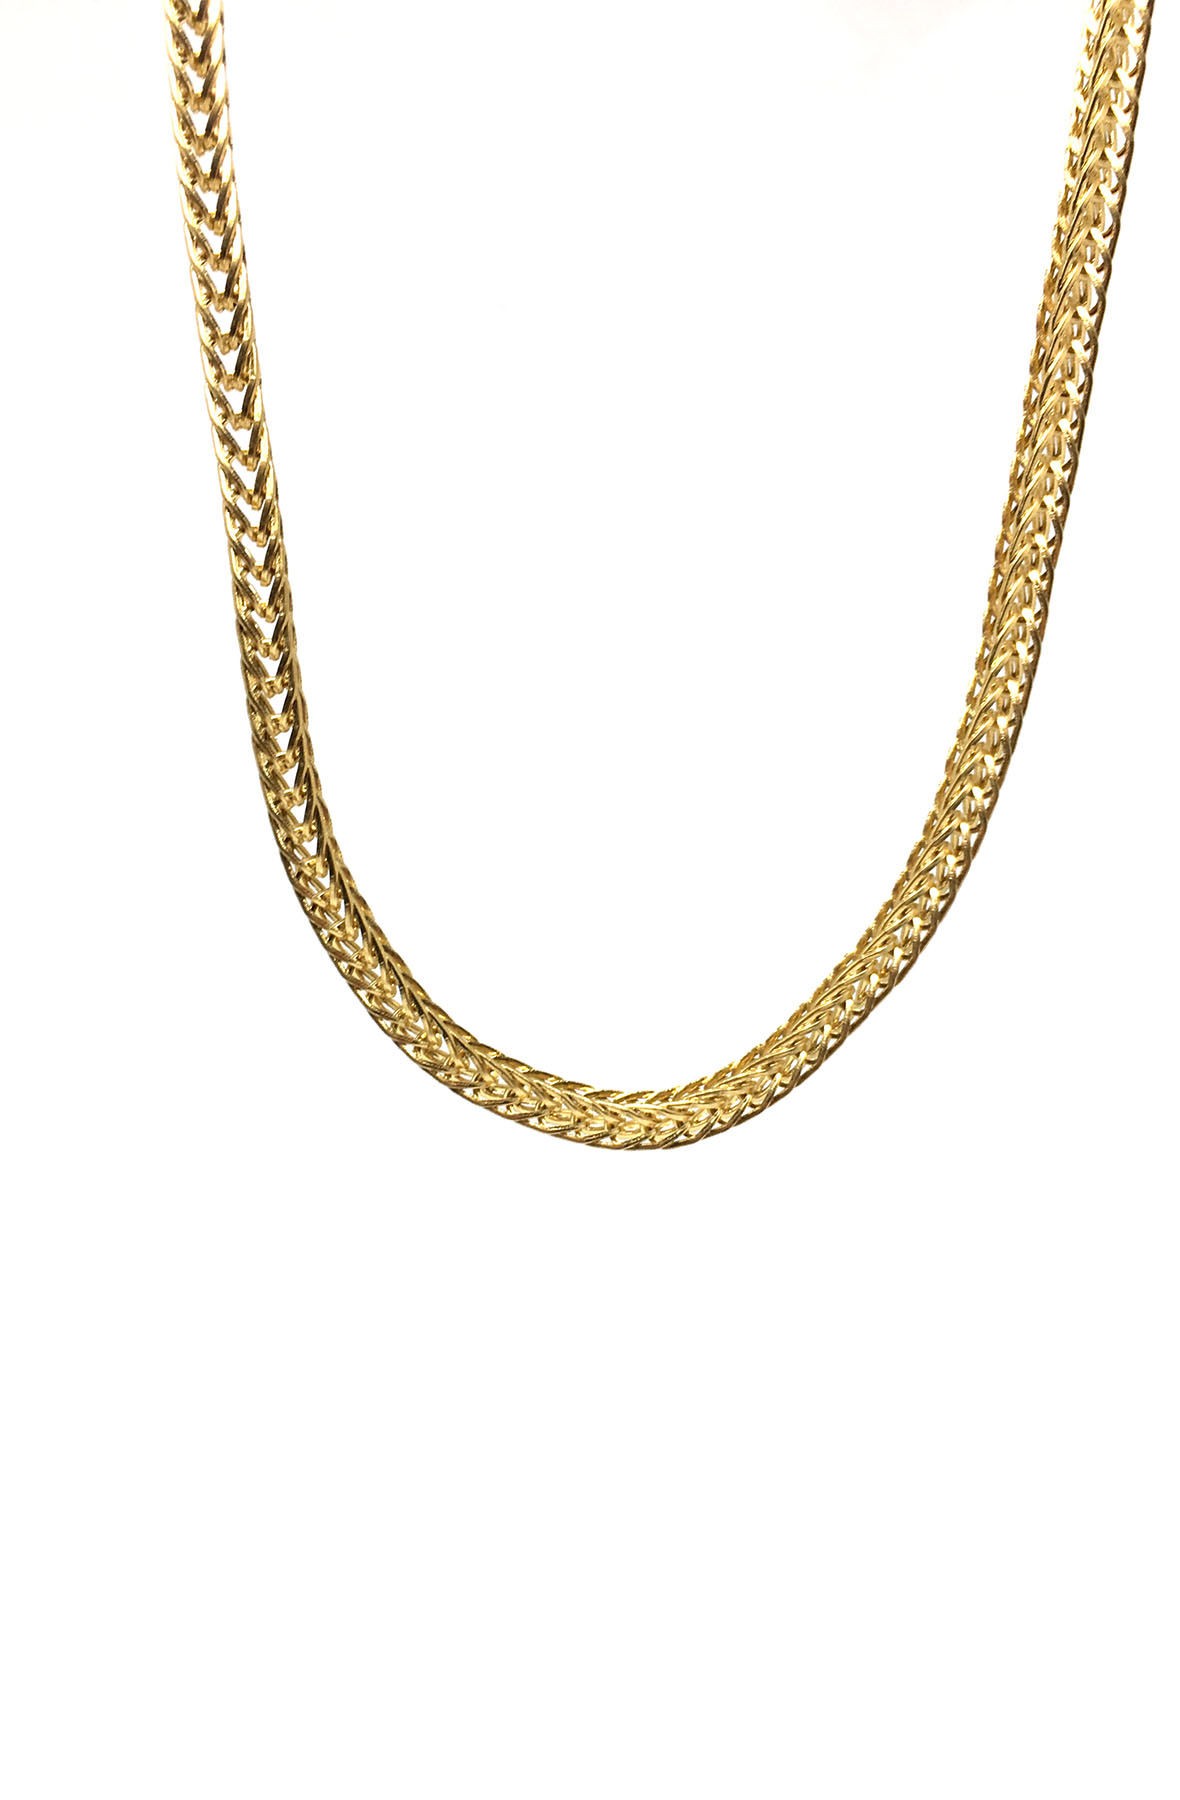 stainless steel gold franco necklace